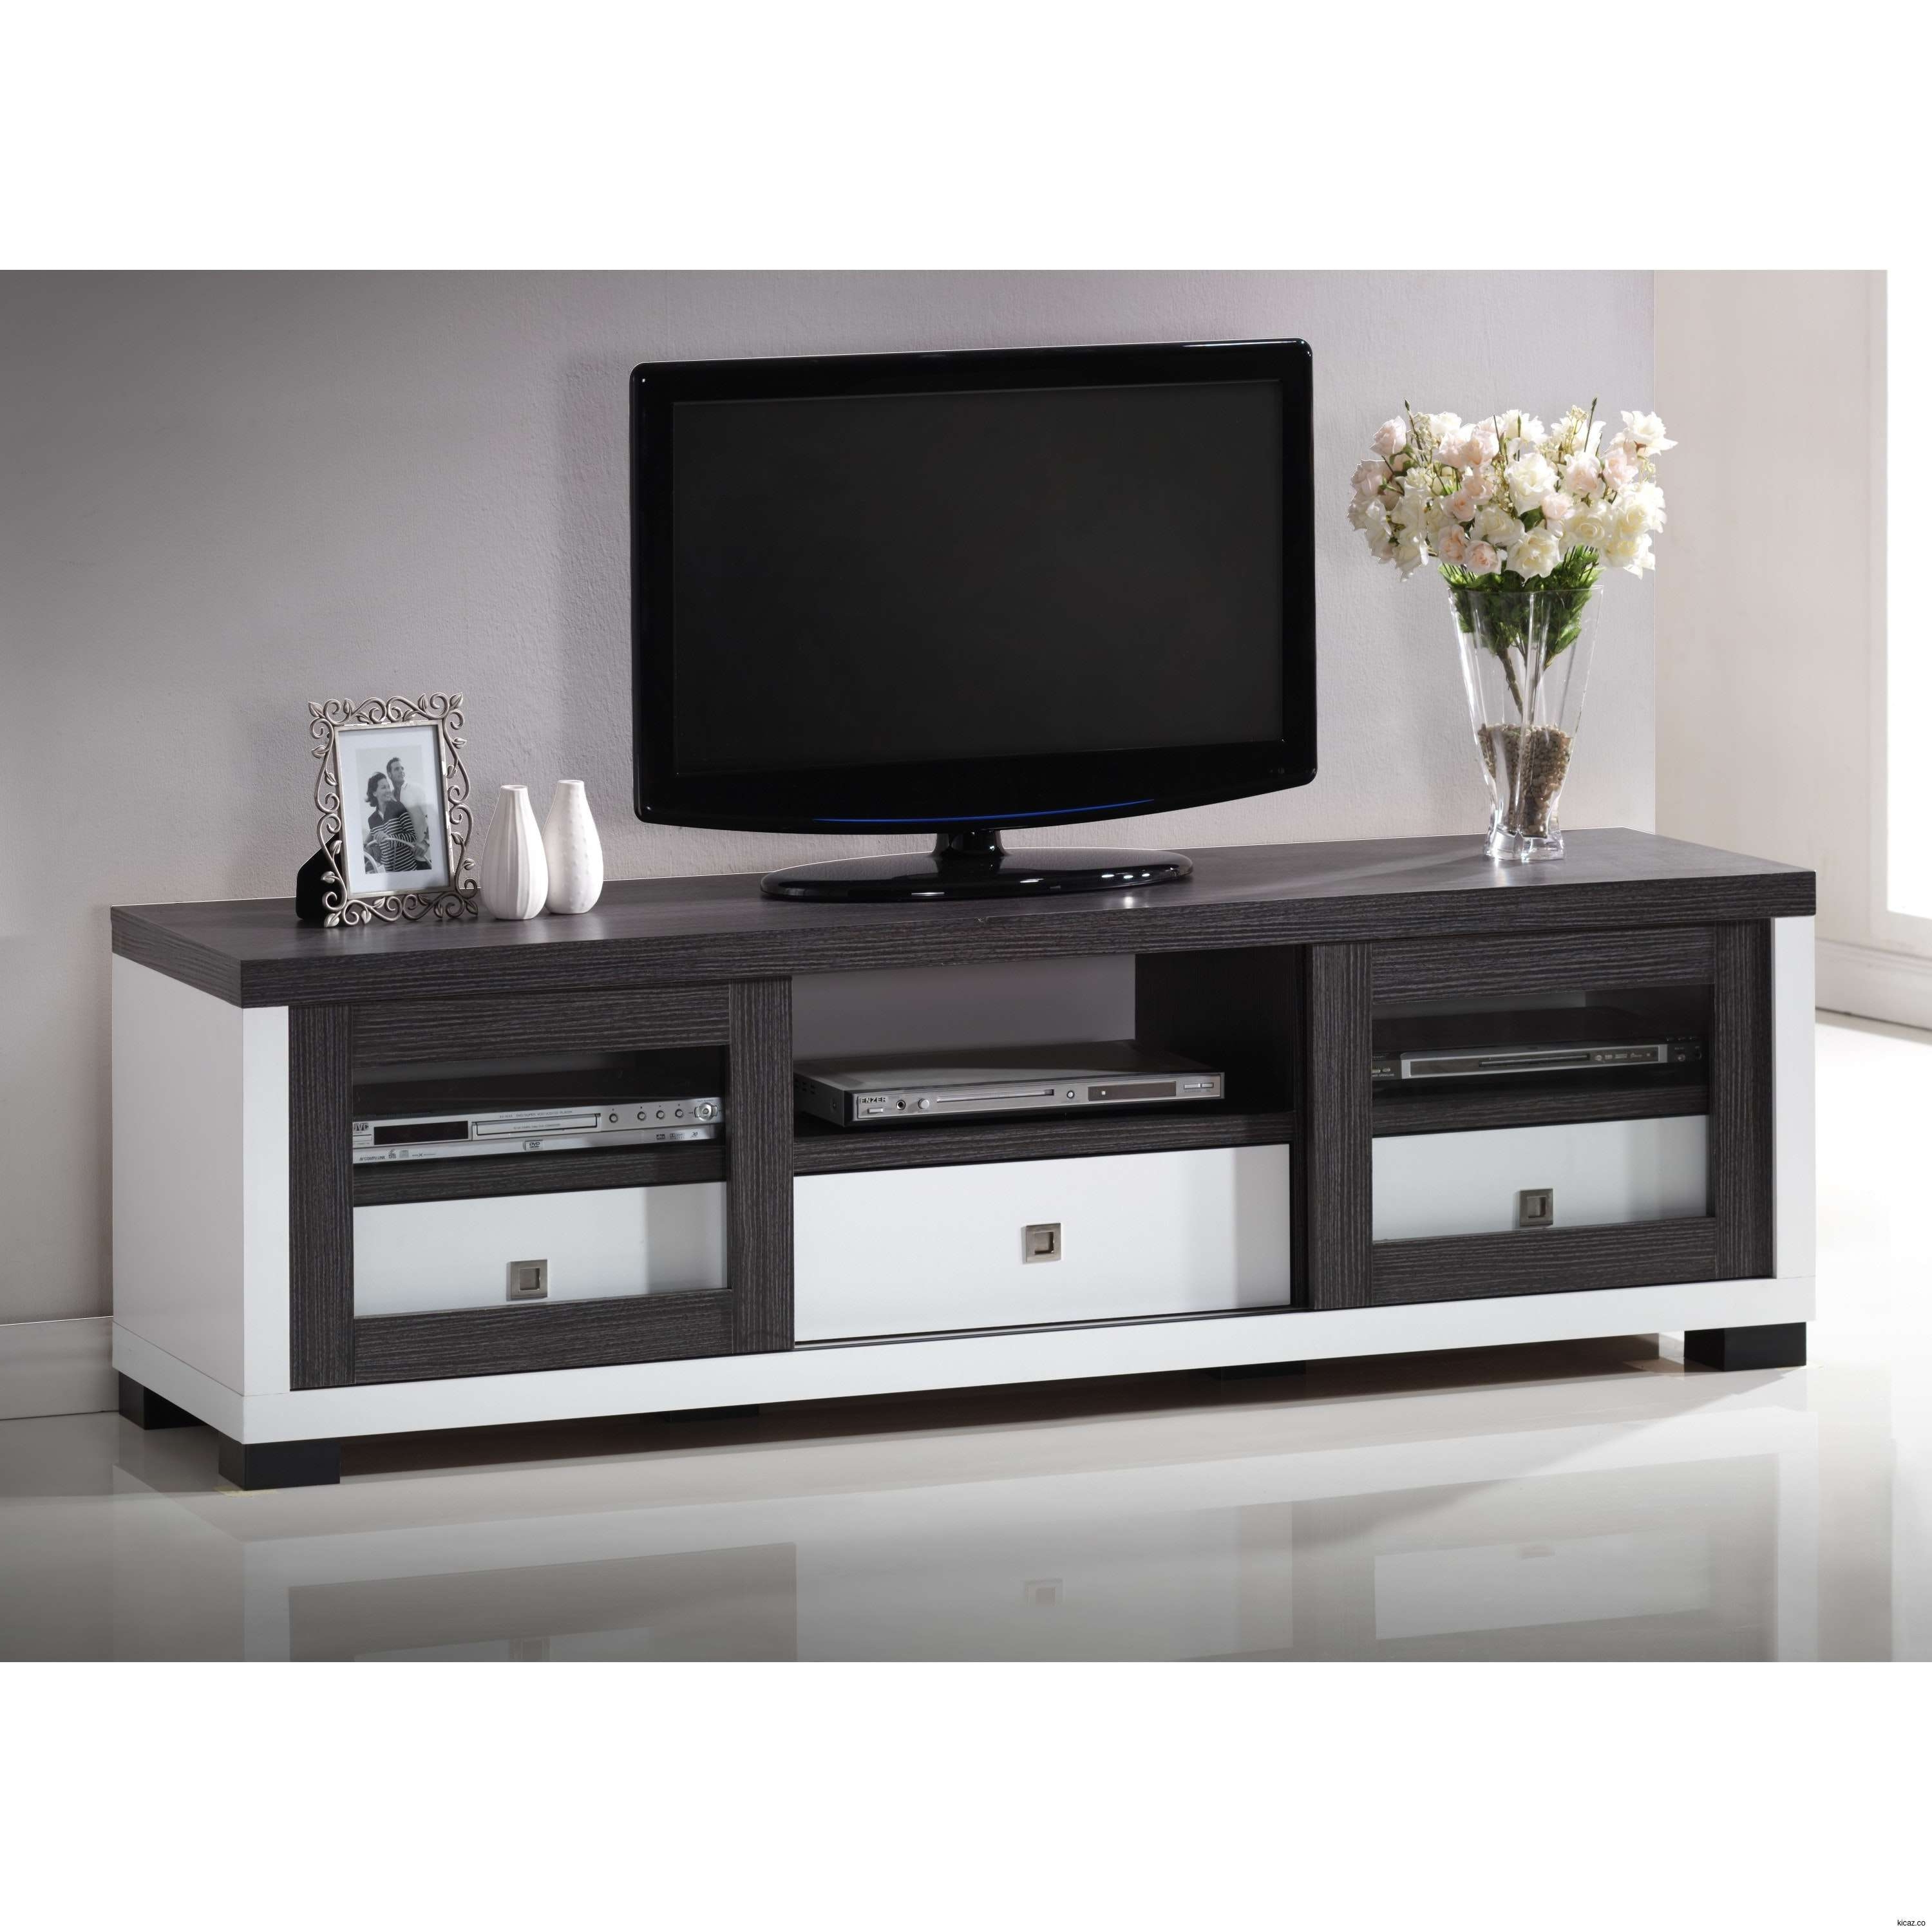 Widely Used Furniture Accessories : Large Black White Wooden Ikea Tv Stand With Throughout Long Tv Stands Furniture (View 19 of 20)